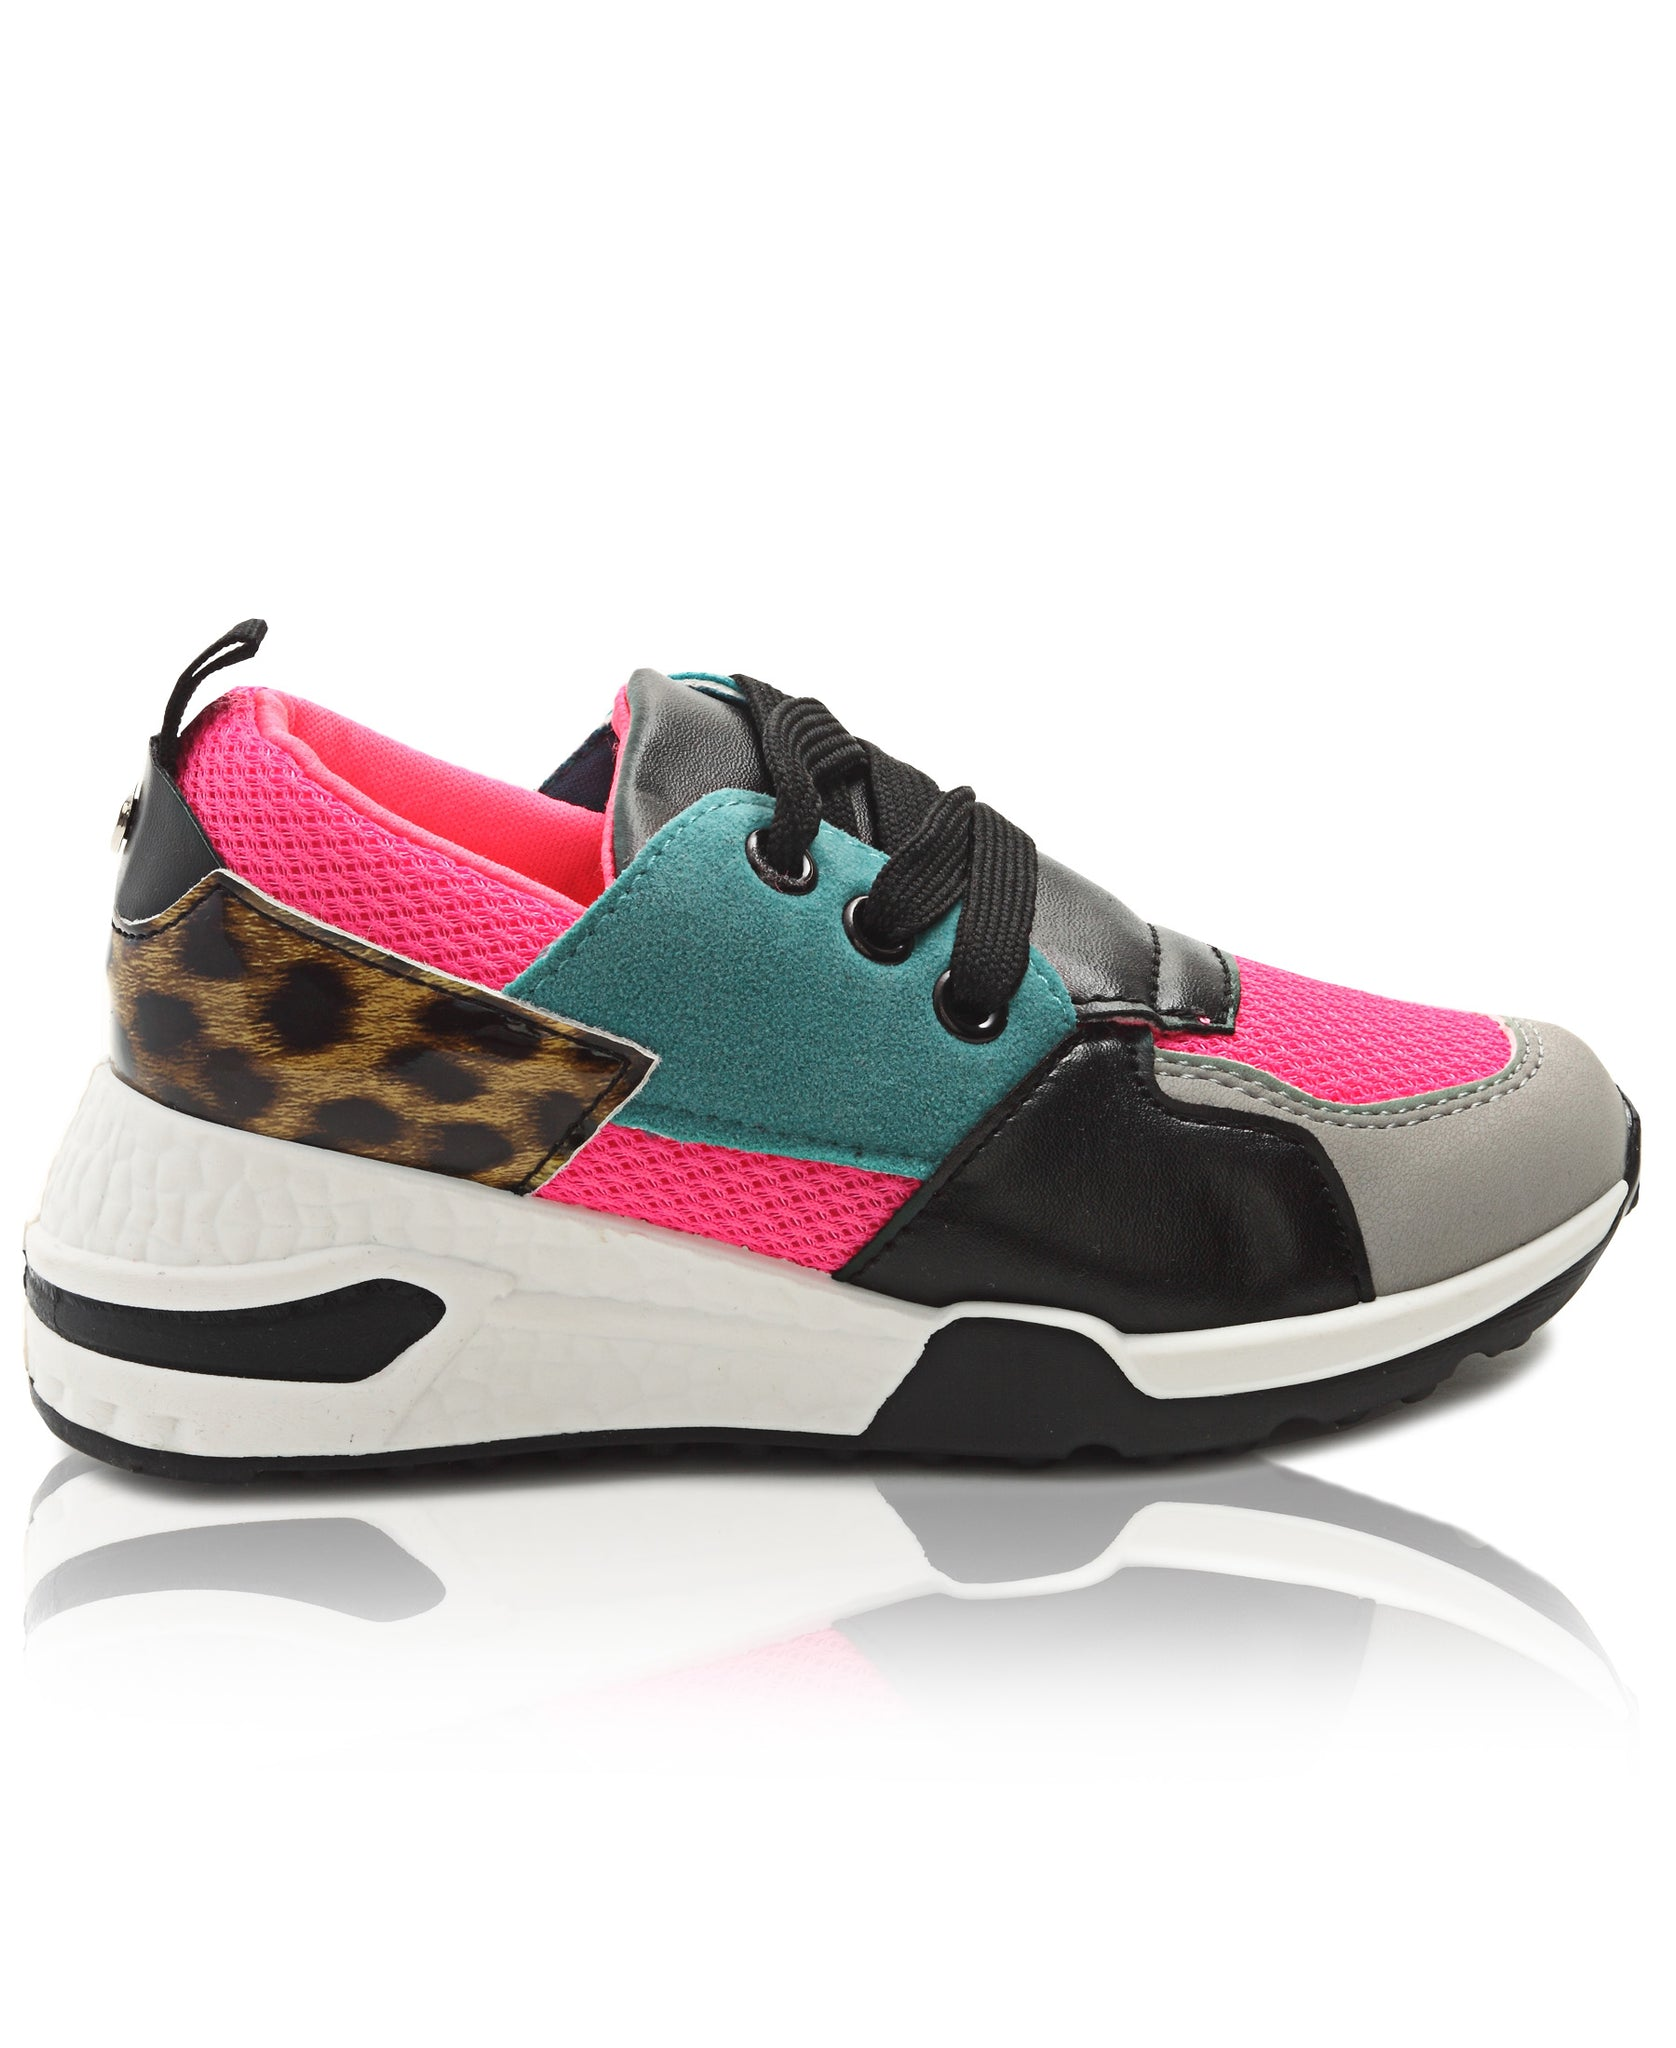 Girls Sneakers - Fuschia